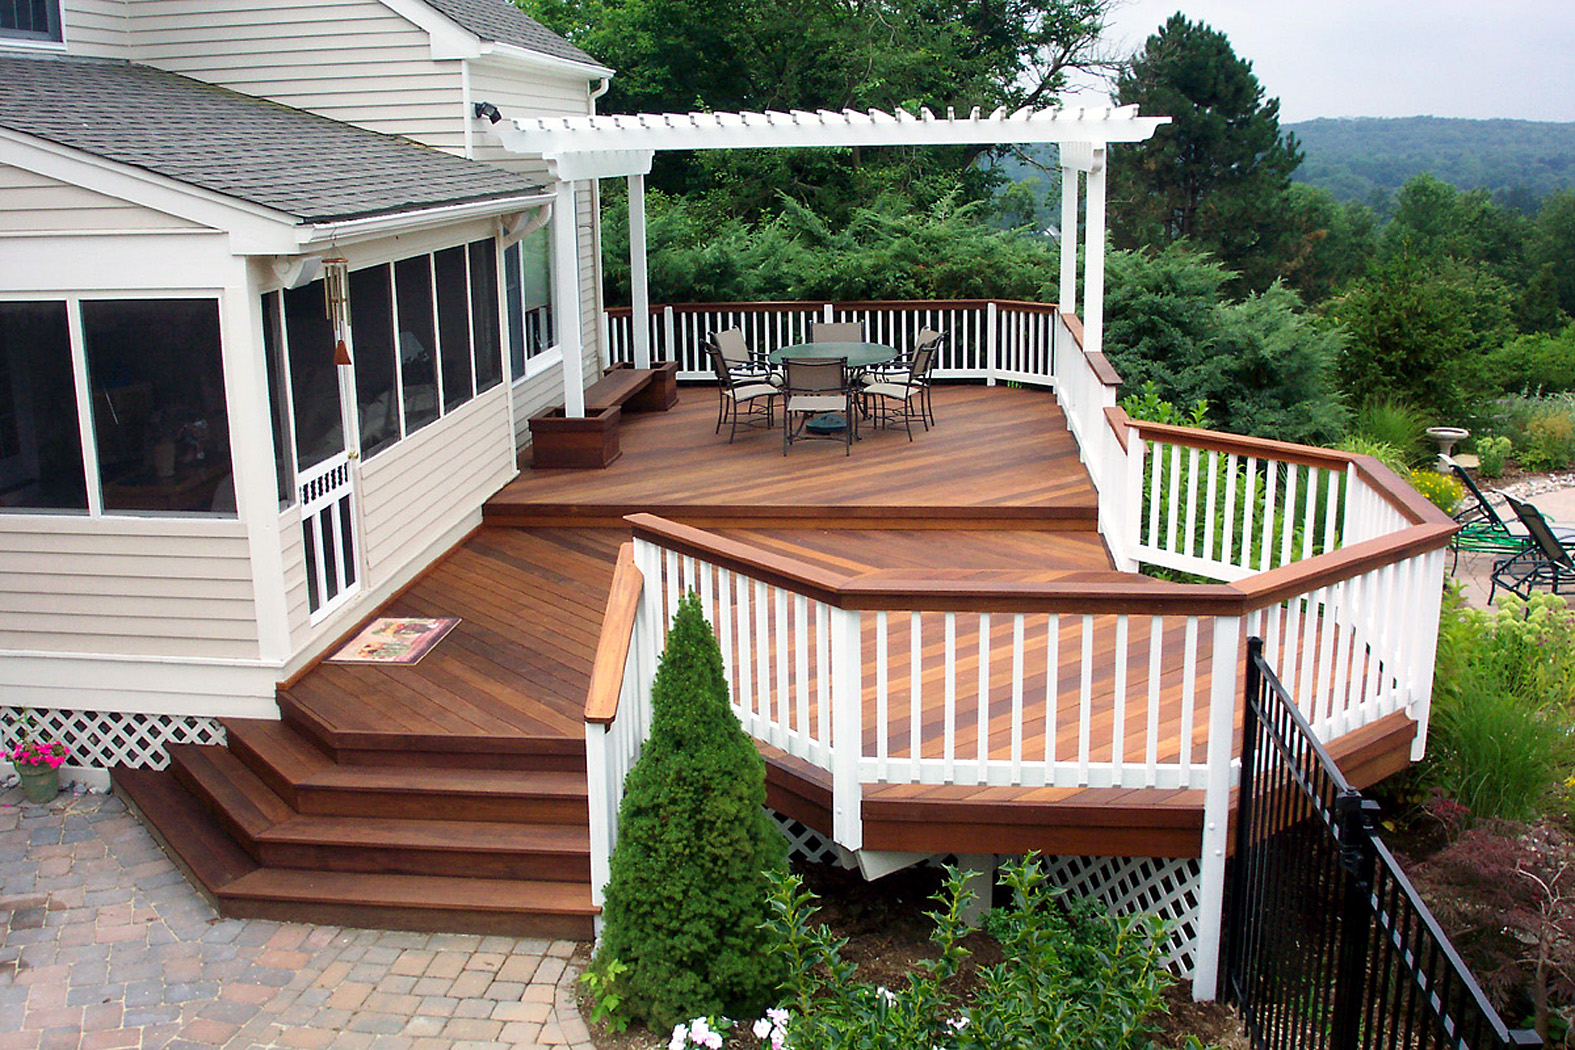 Archadeck Custom decks and patio rooms in Pittsburgh  Just another WordPresscom weblog